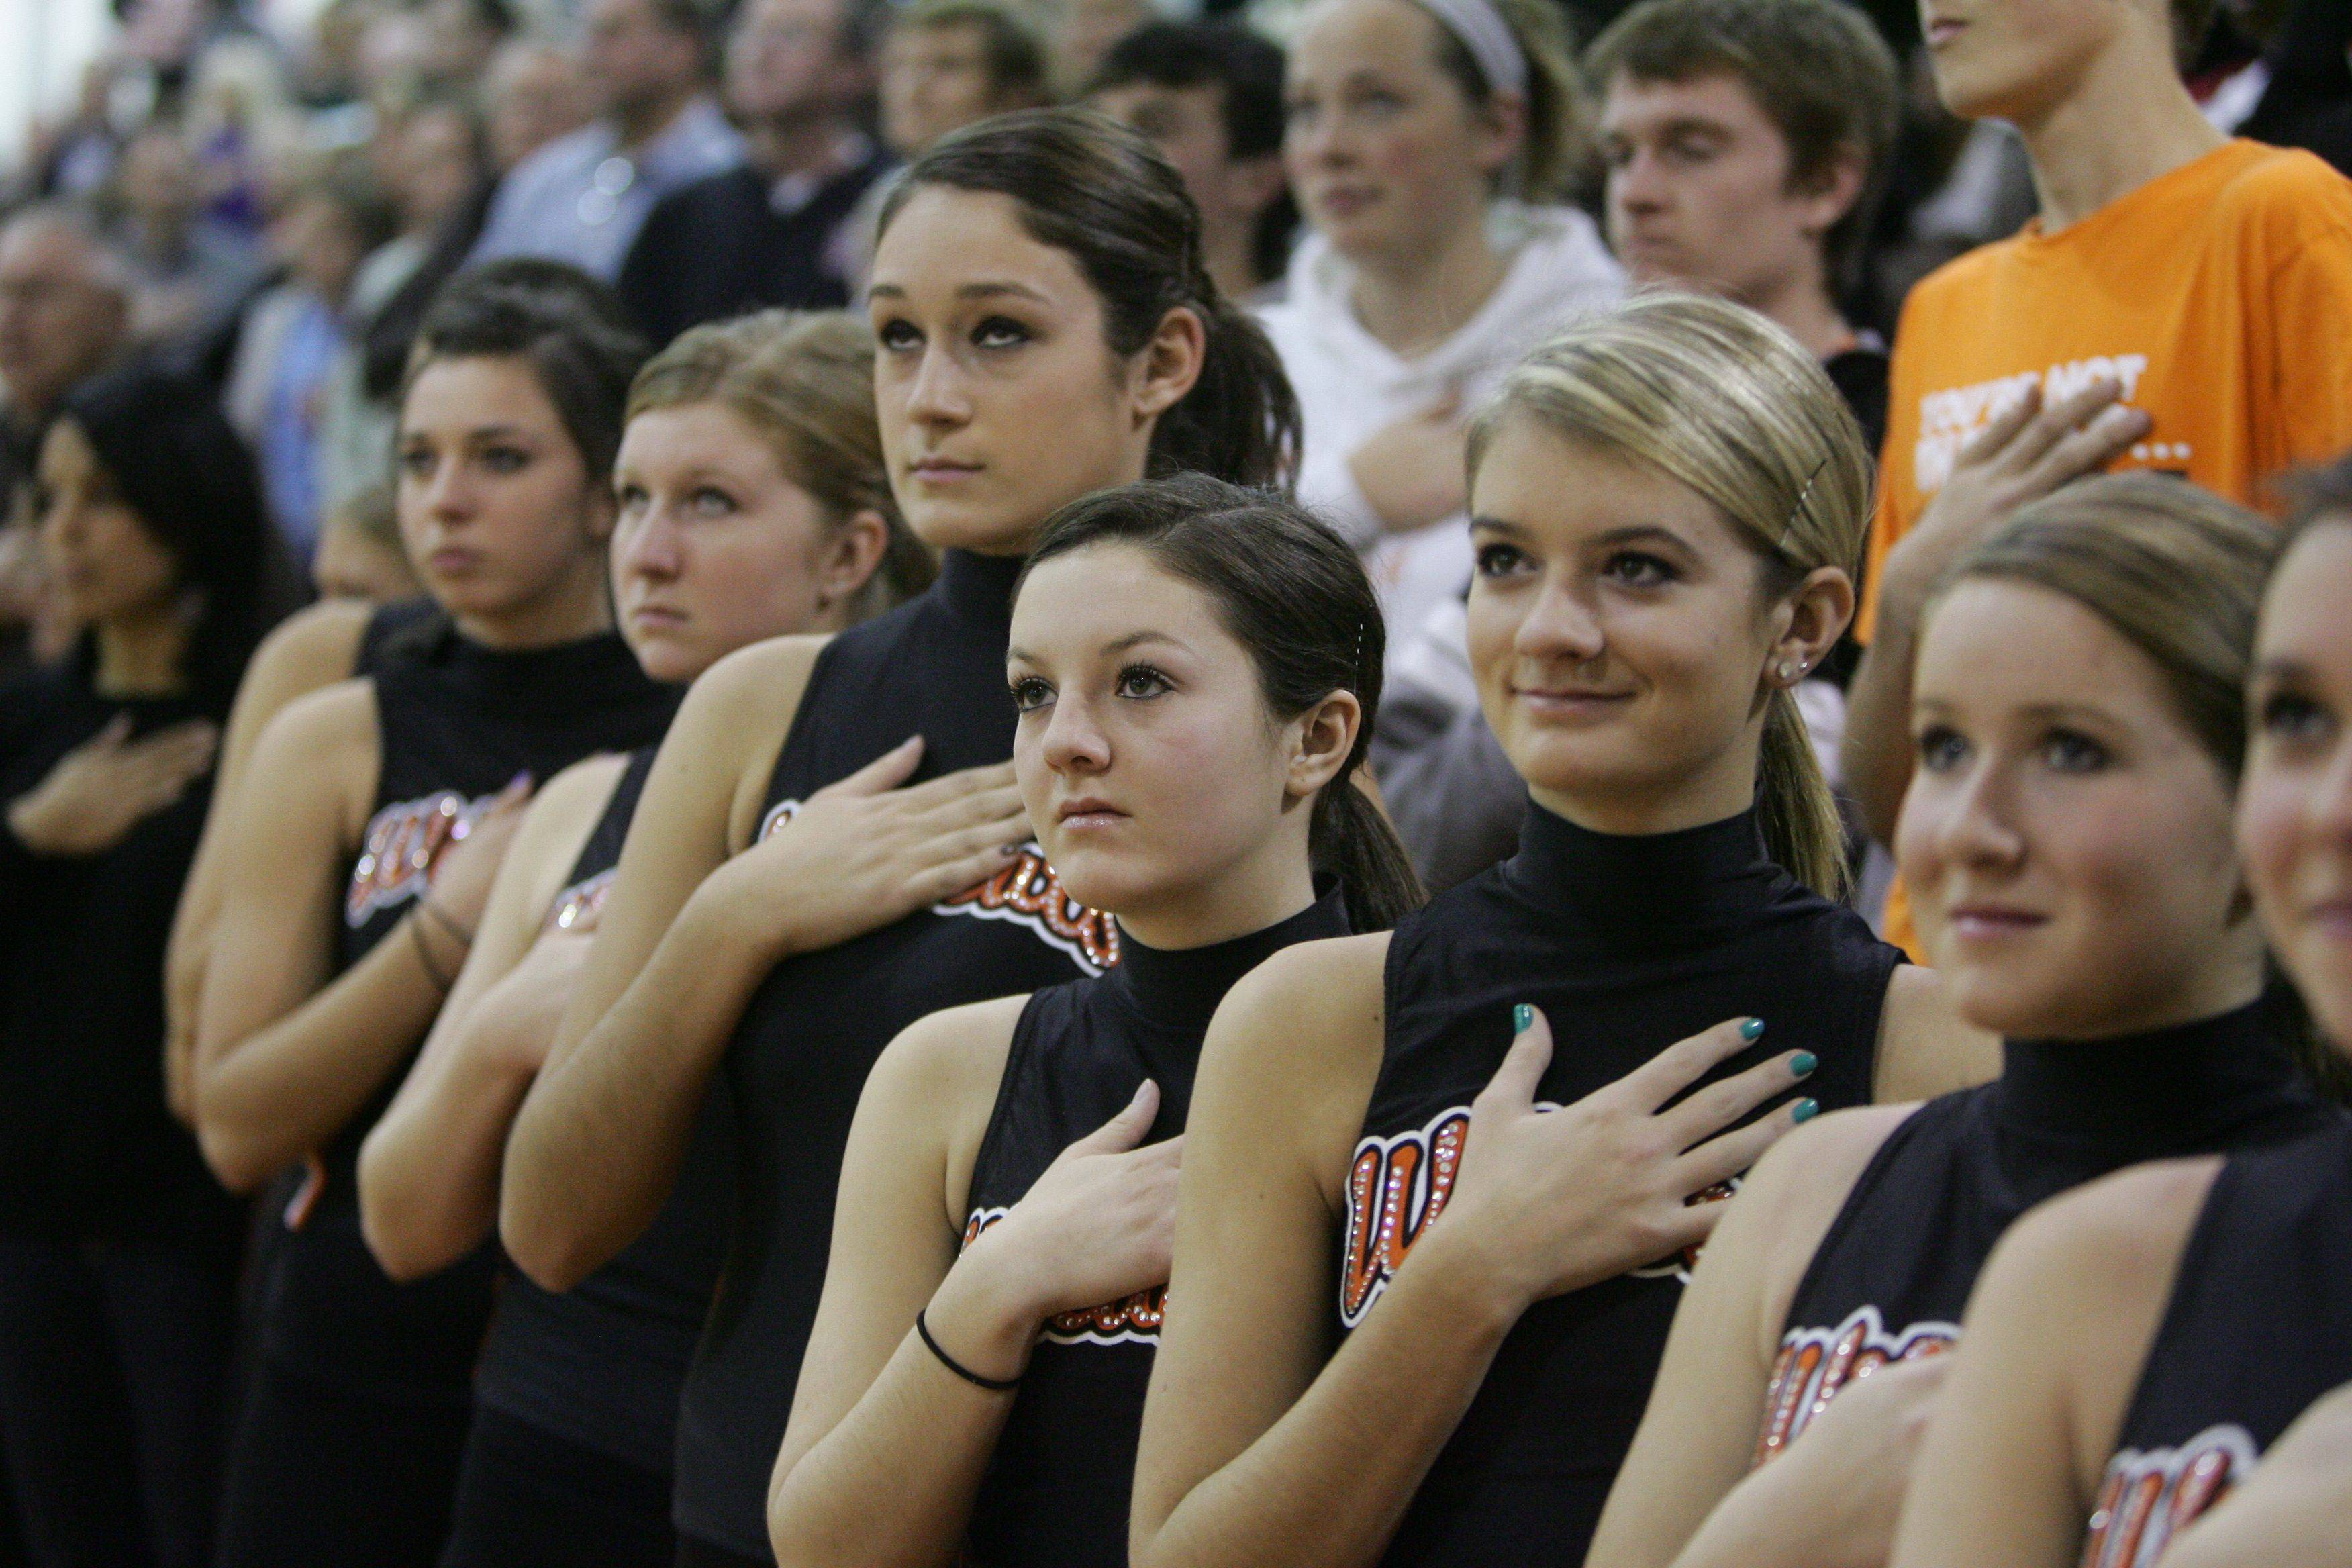 Images from the Stevenson at Libertyville girls basketball game Tuesday, November 30.